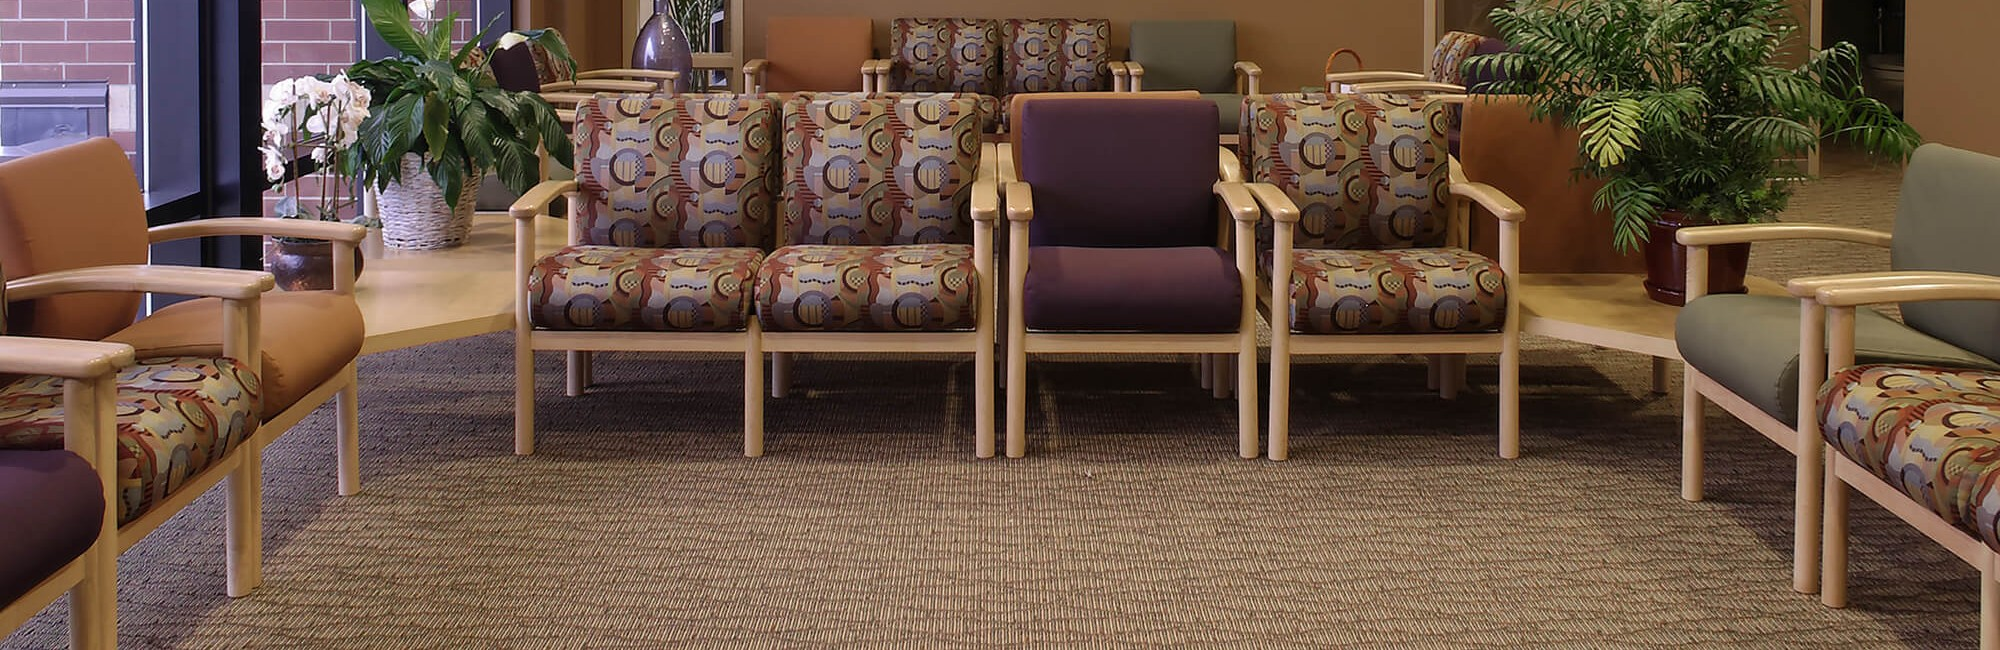 Medical Office Waiting Area